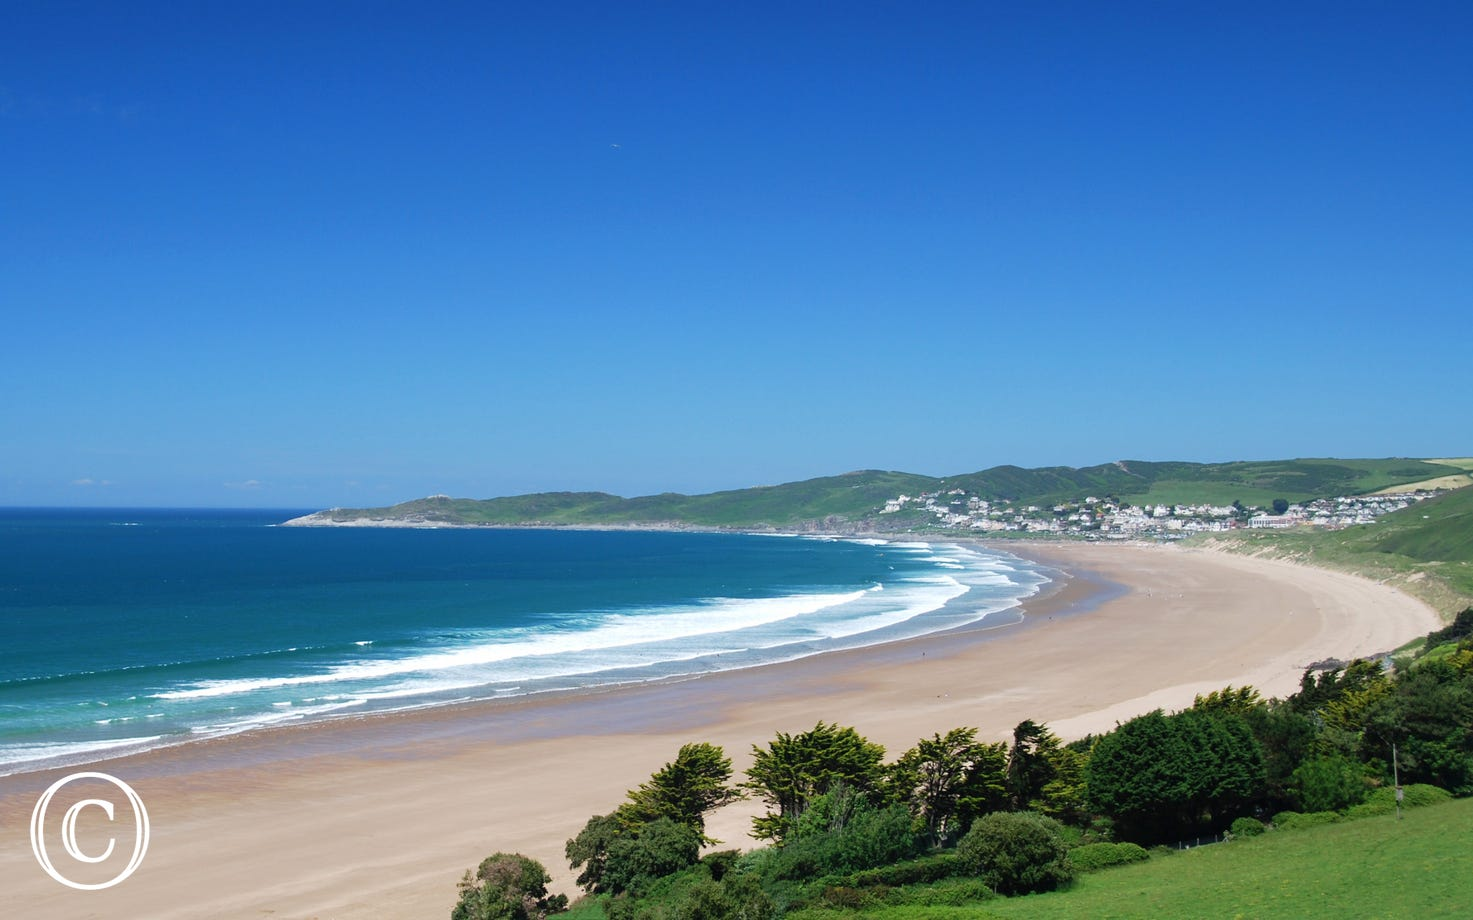 Just over a mile of country lanes takes you to the absolutely stunning beach and coastline of Putsborough